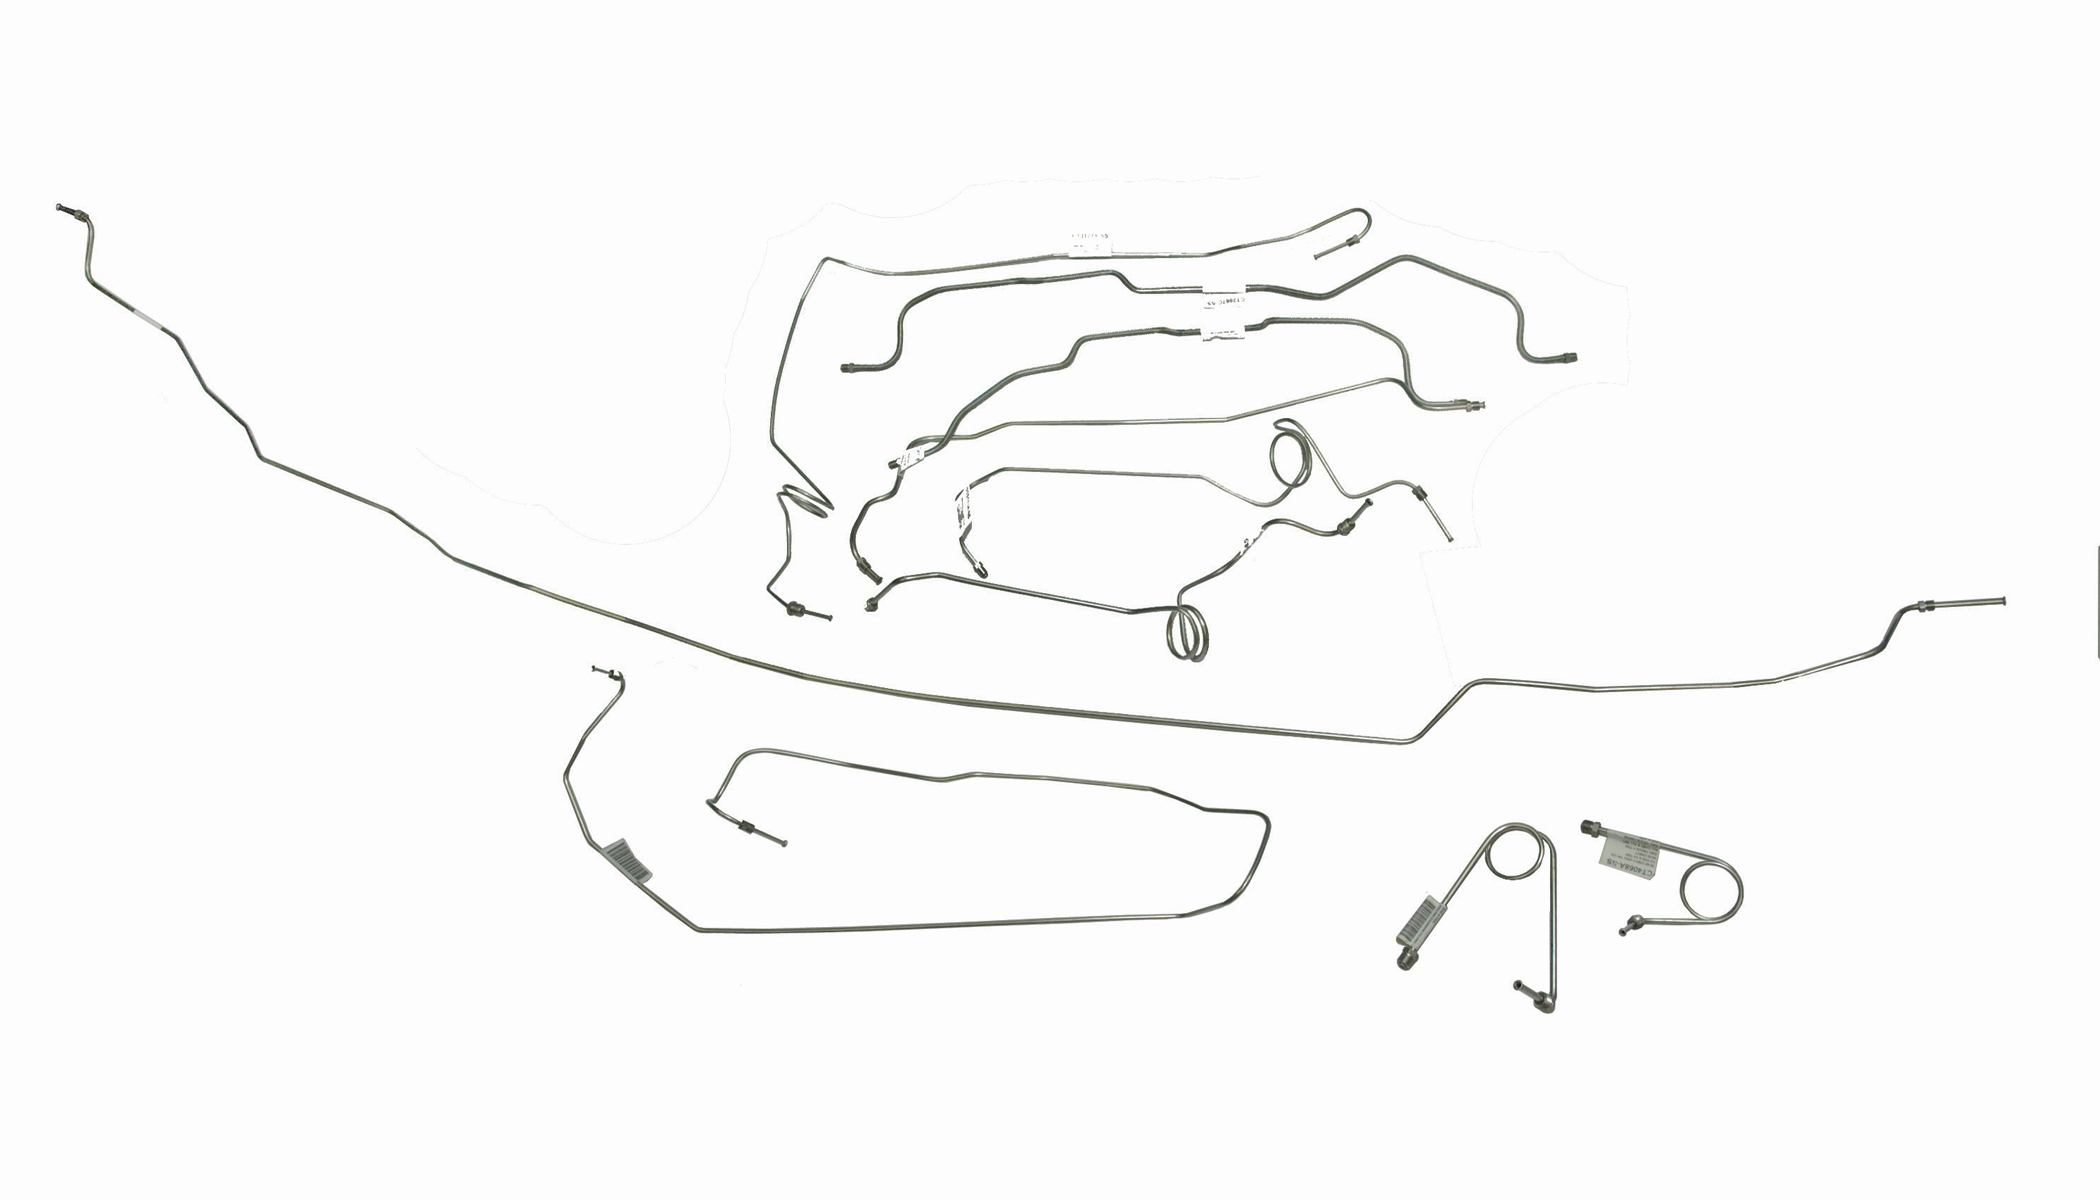 Replacement Stainless Steel Brake Lines For The 07